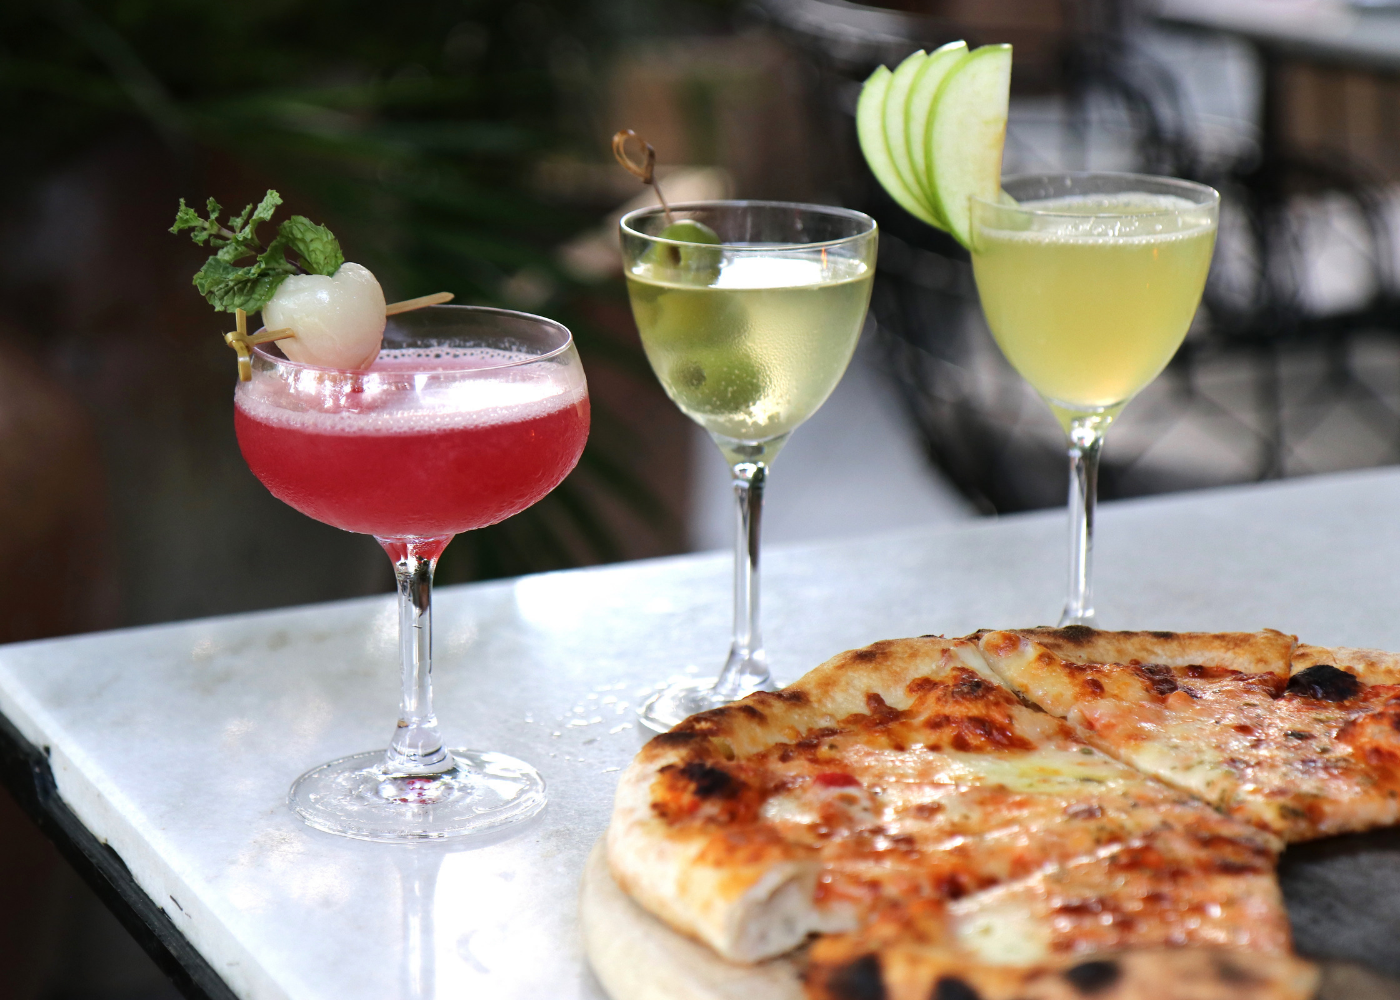 There are new happy hour deals at Publico